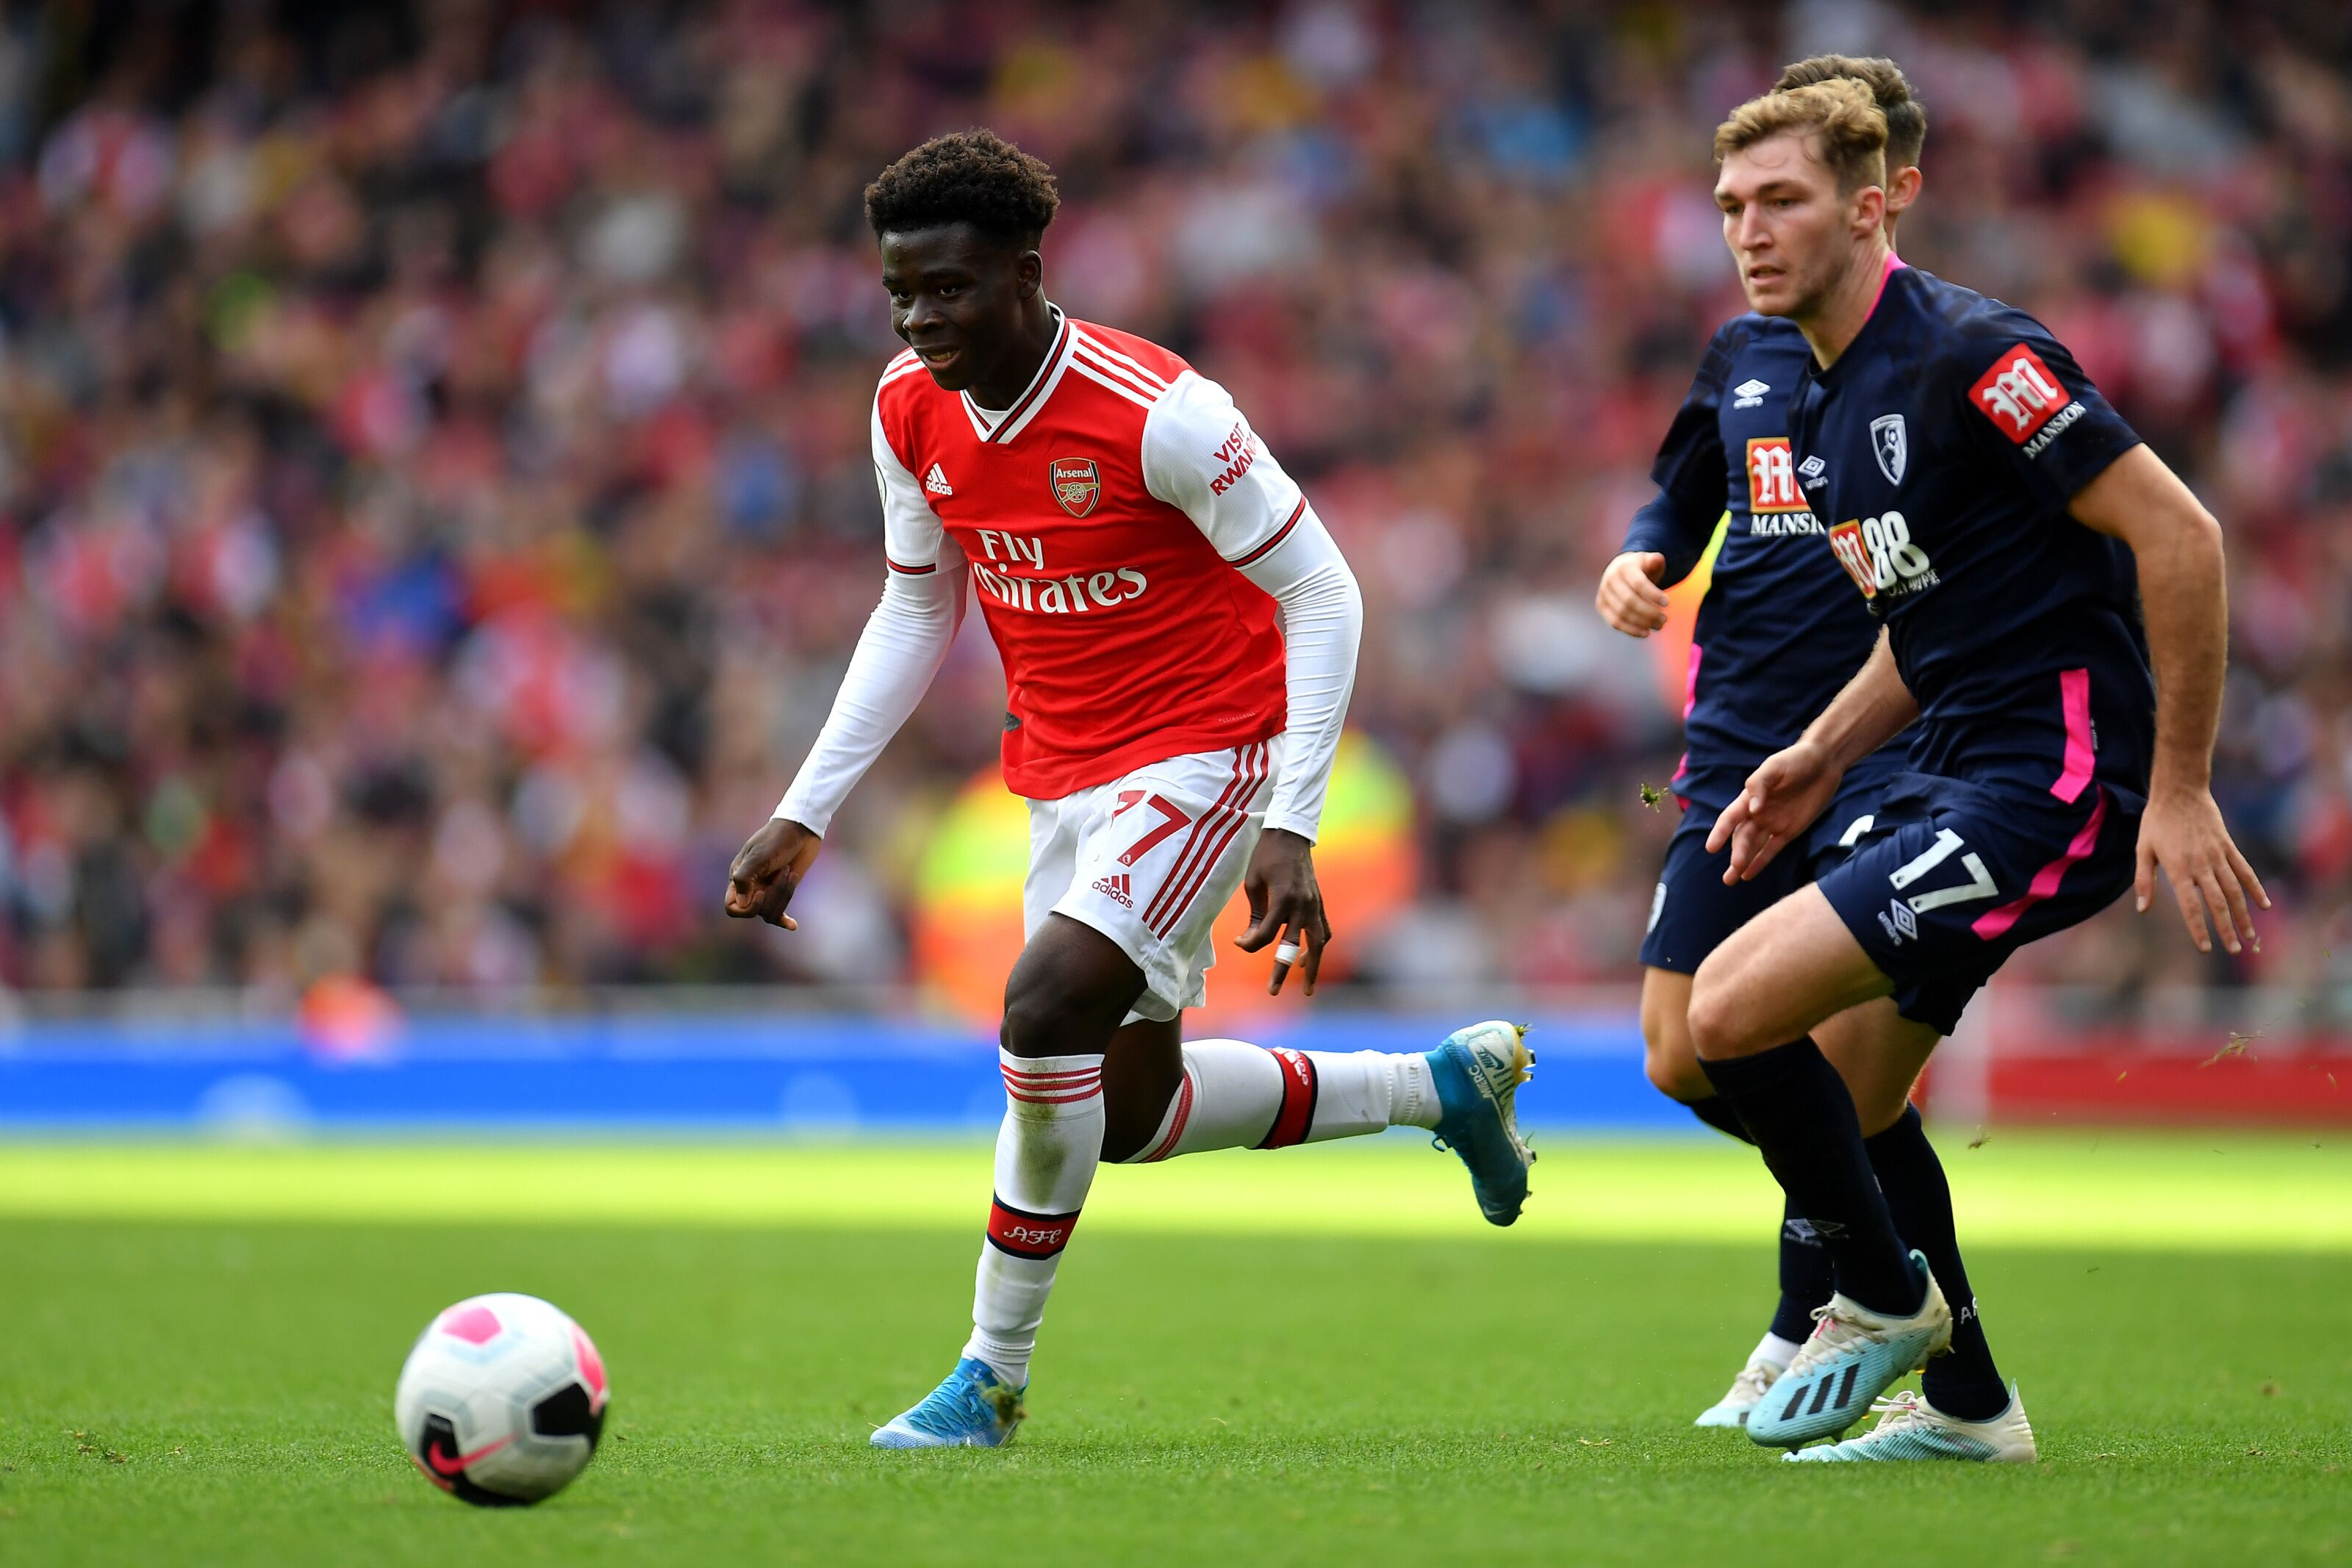 Arsenal: Bukayo Saka primed for Golden Boy 2020